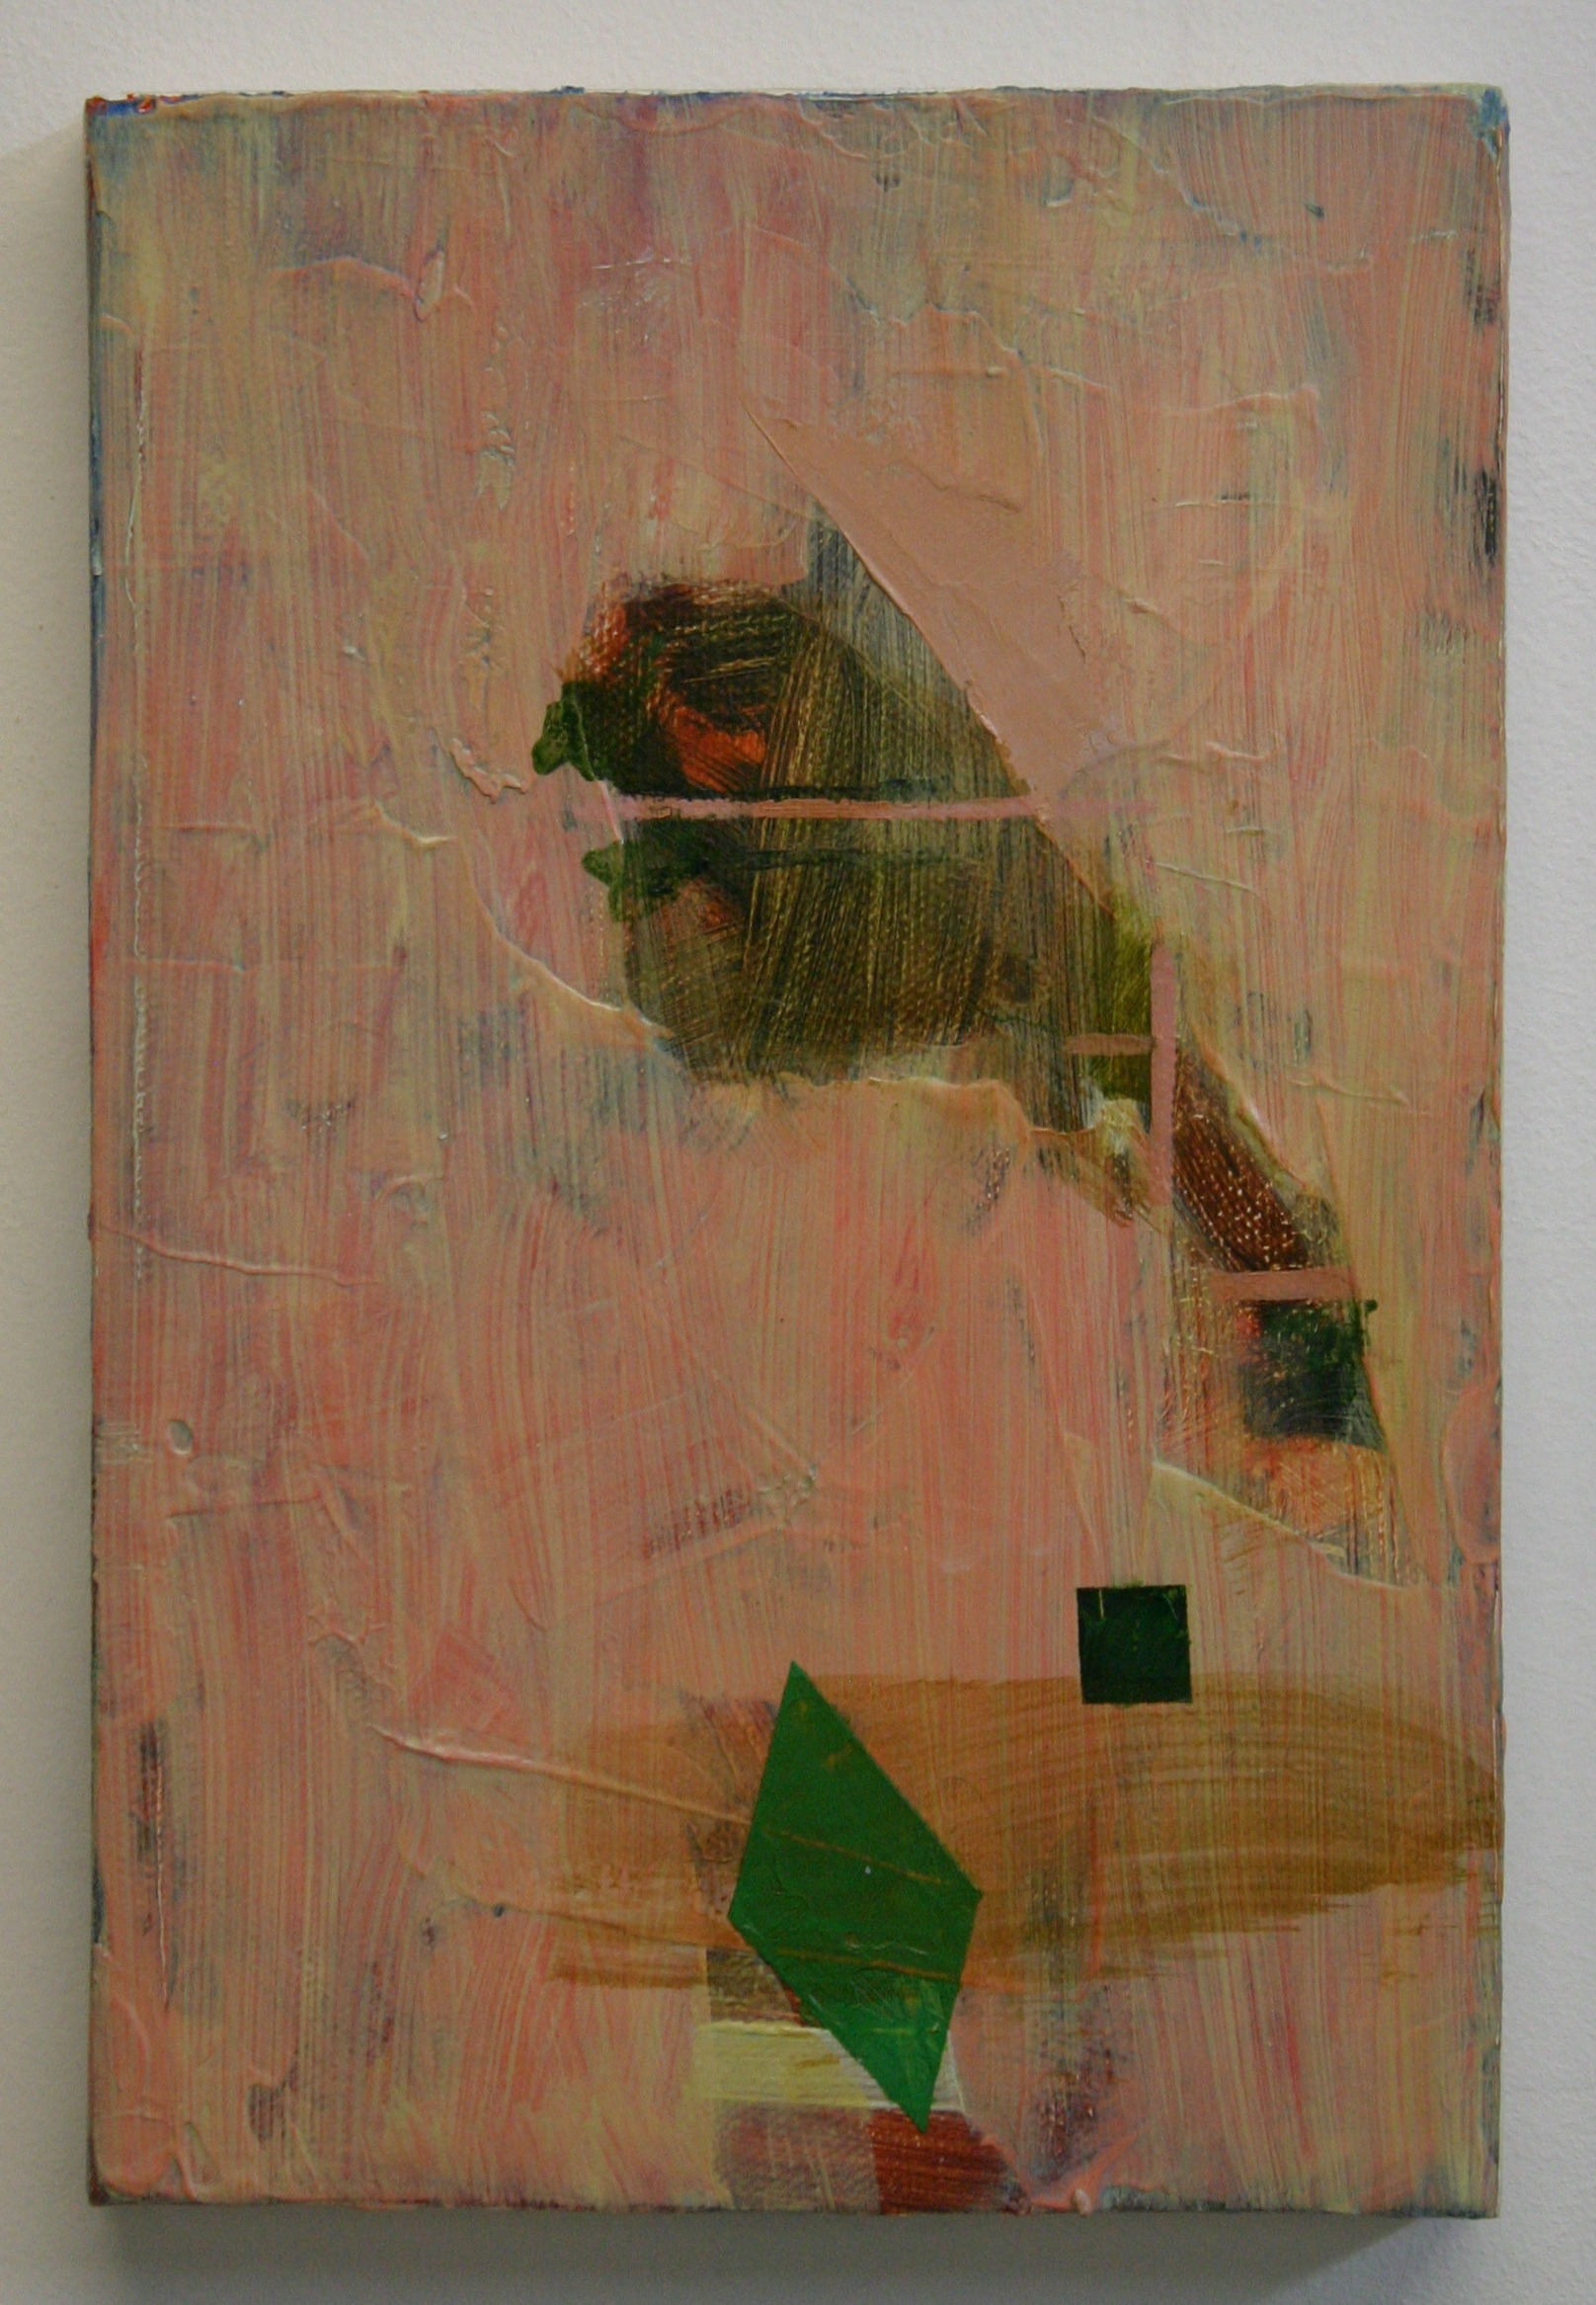 Criss Cross, 2012, oil on canvas, 9 x 6 inches